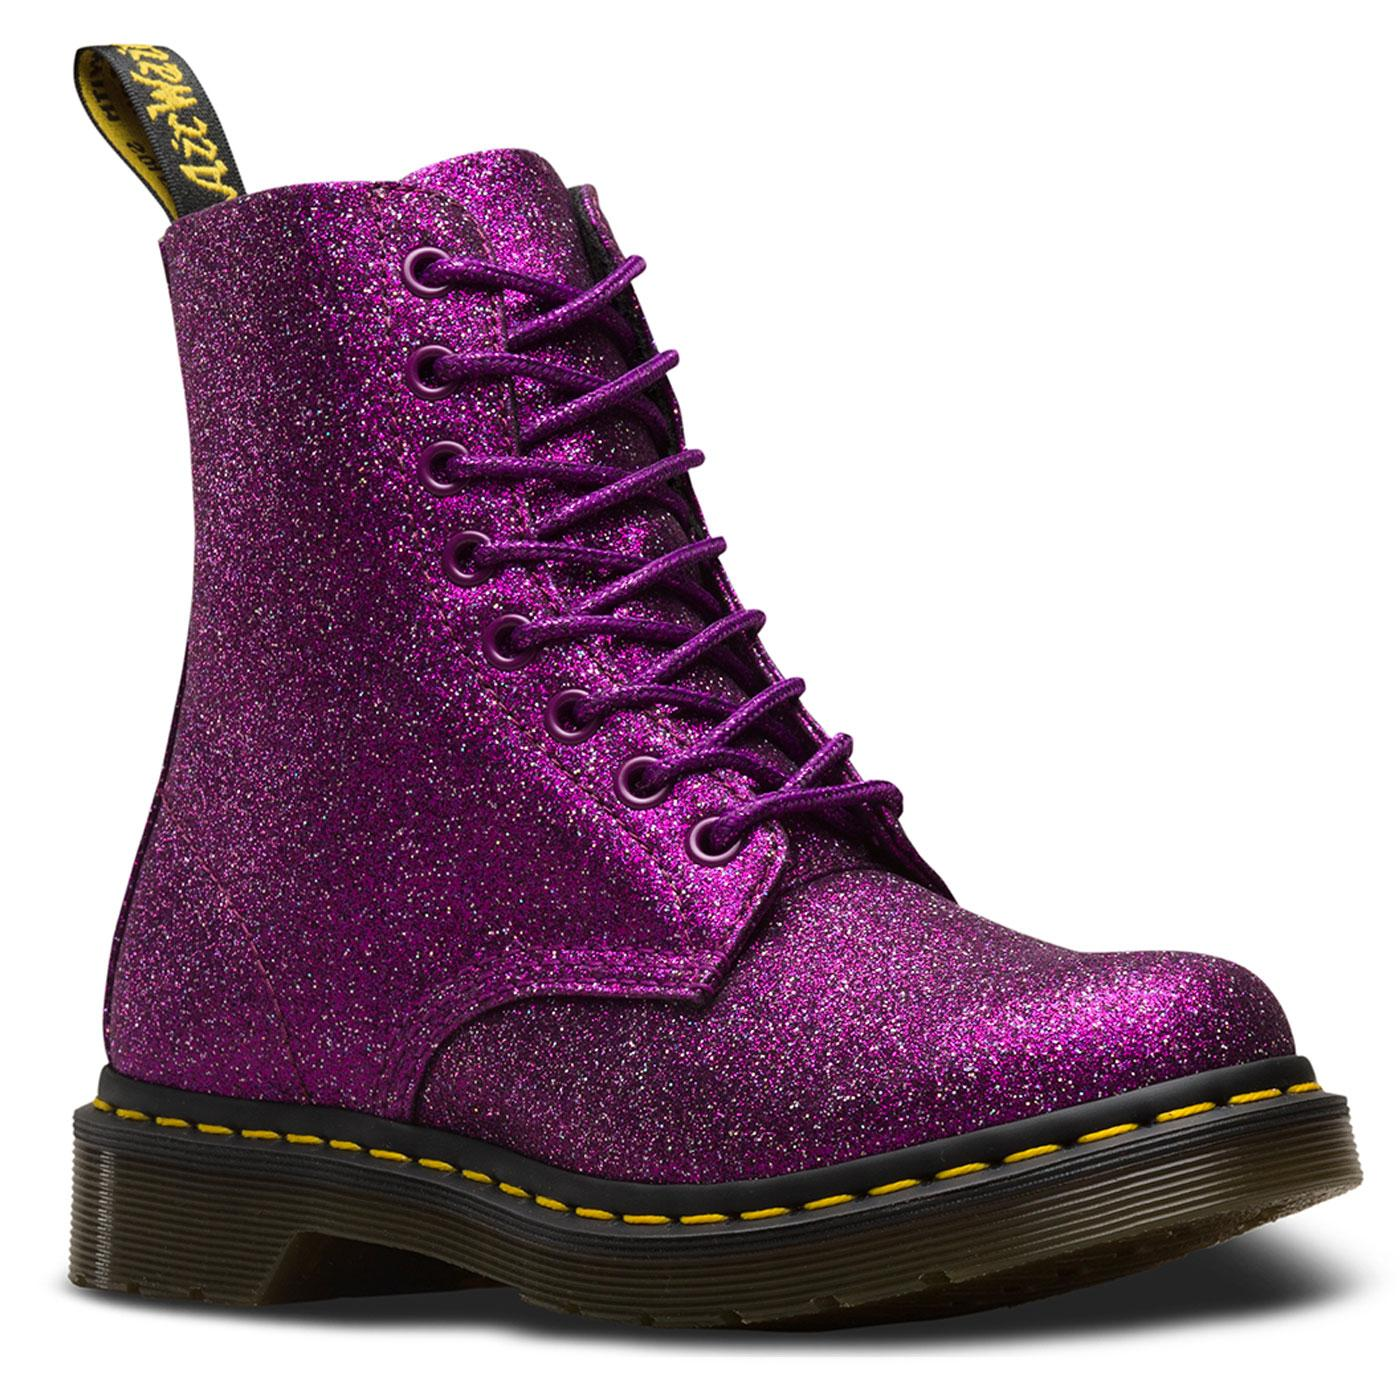 Pascal DR MARTENS 1460 Boots in Purple Glitter